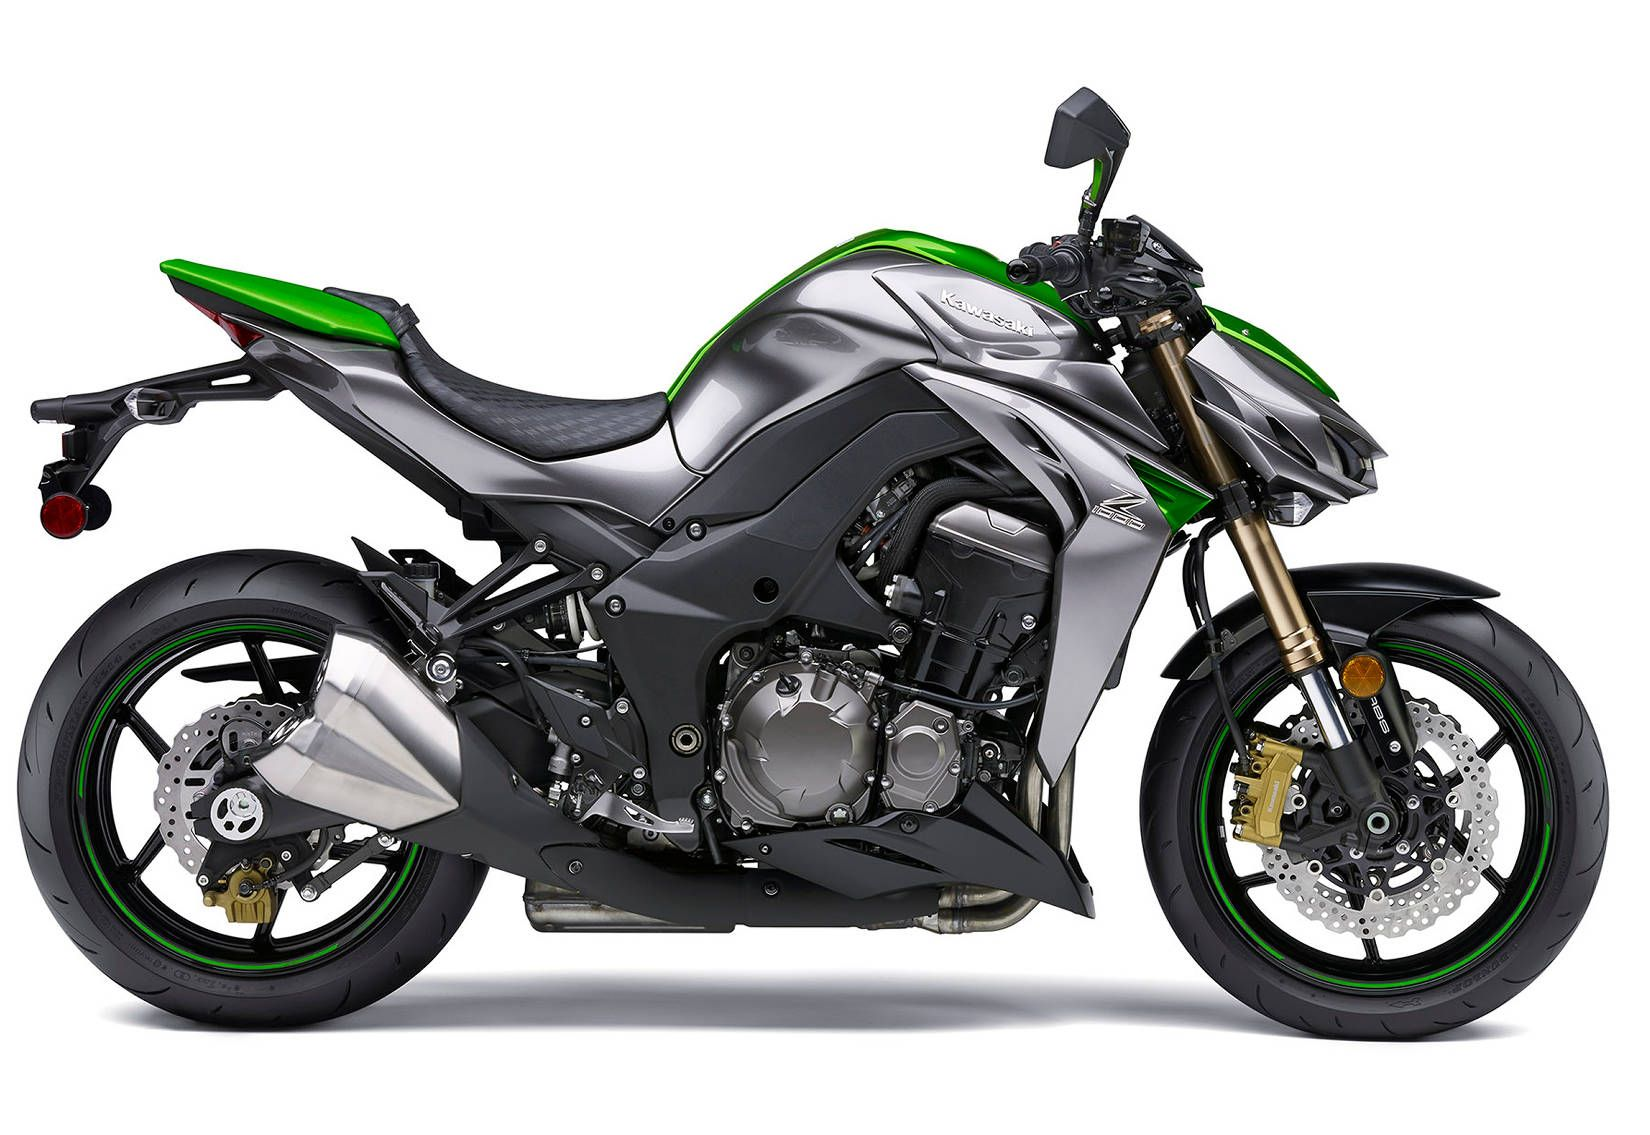 2014 Kawasaki Z1000 ABS review | Kawasaki z1000 and Wheels